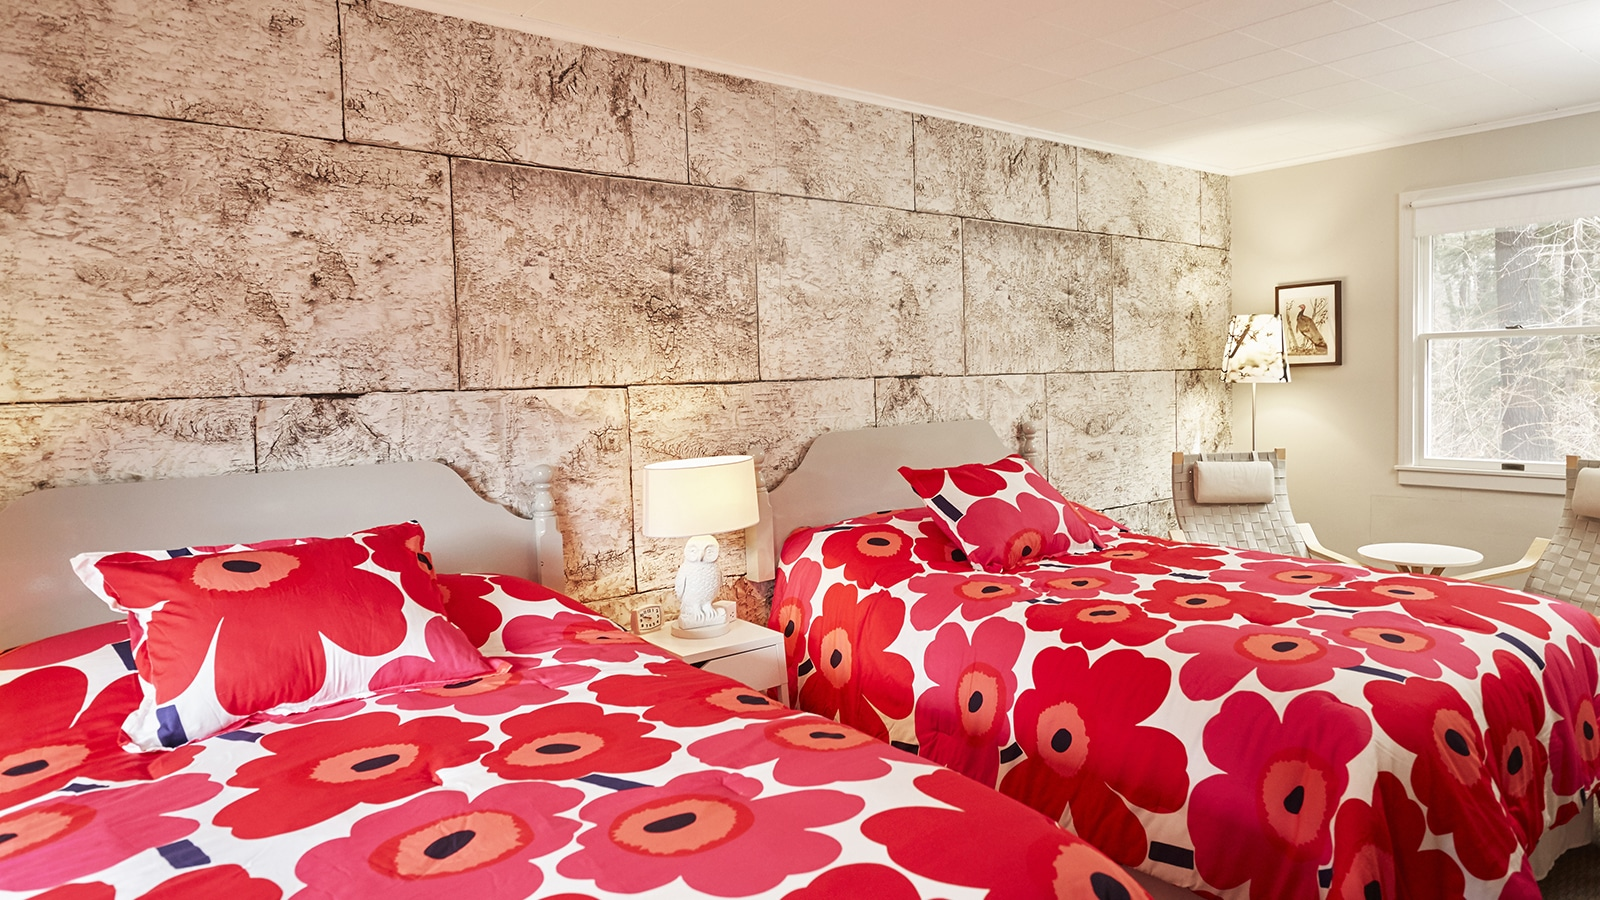 Beds with poppy sheets